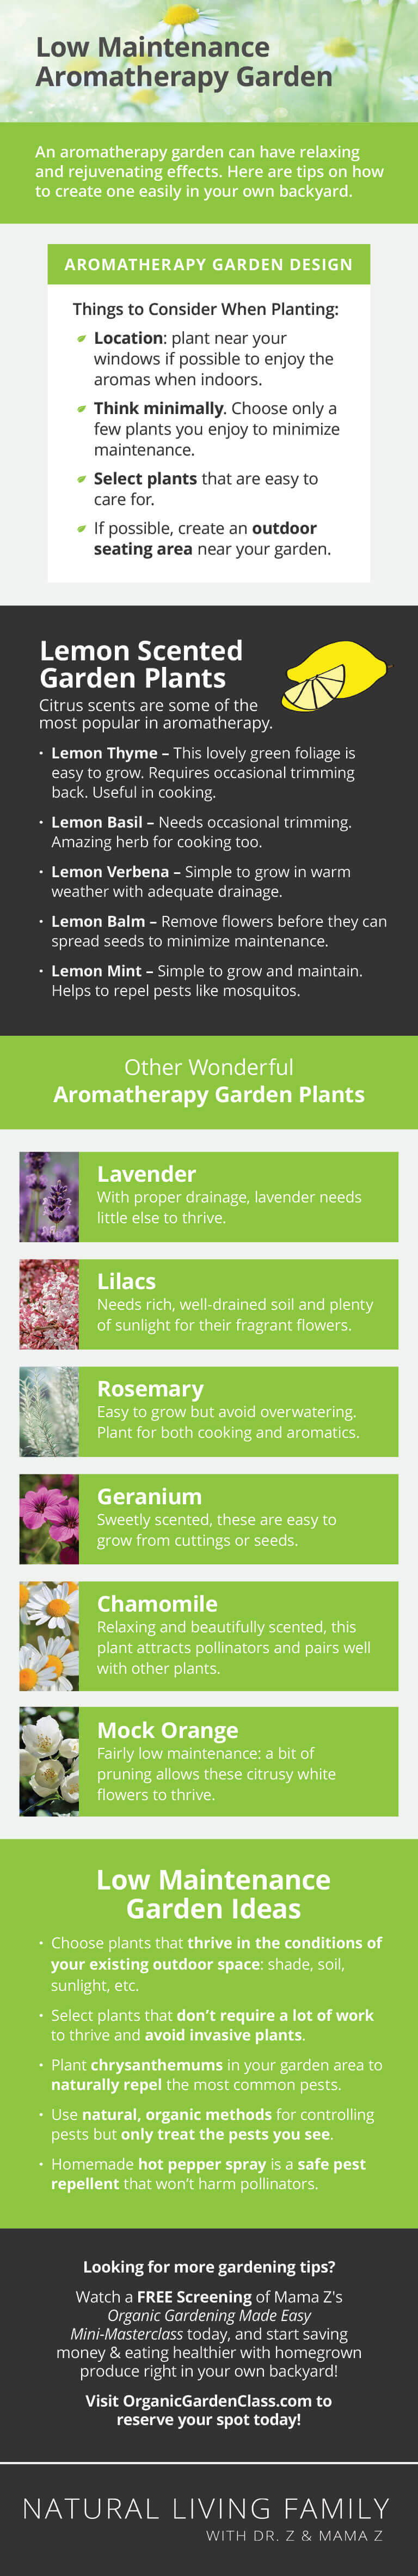 Low Maintenance Aromatherapy Garden Design and Plant List Infographic